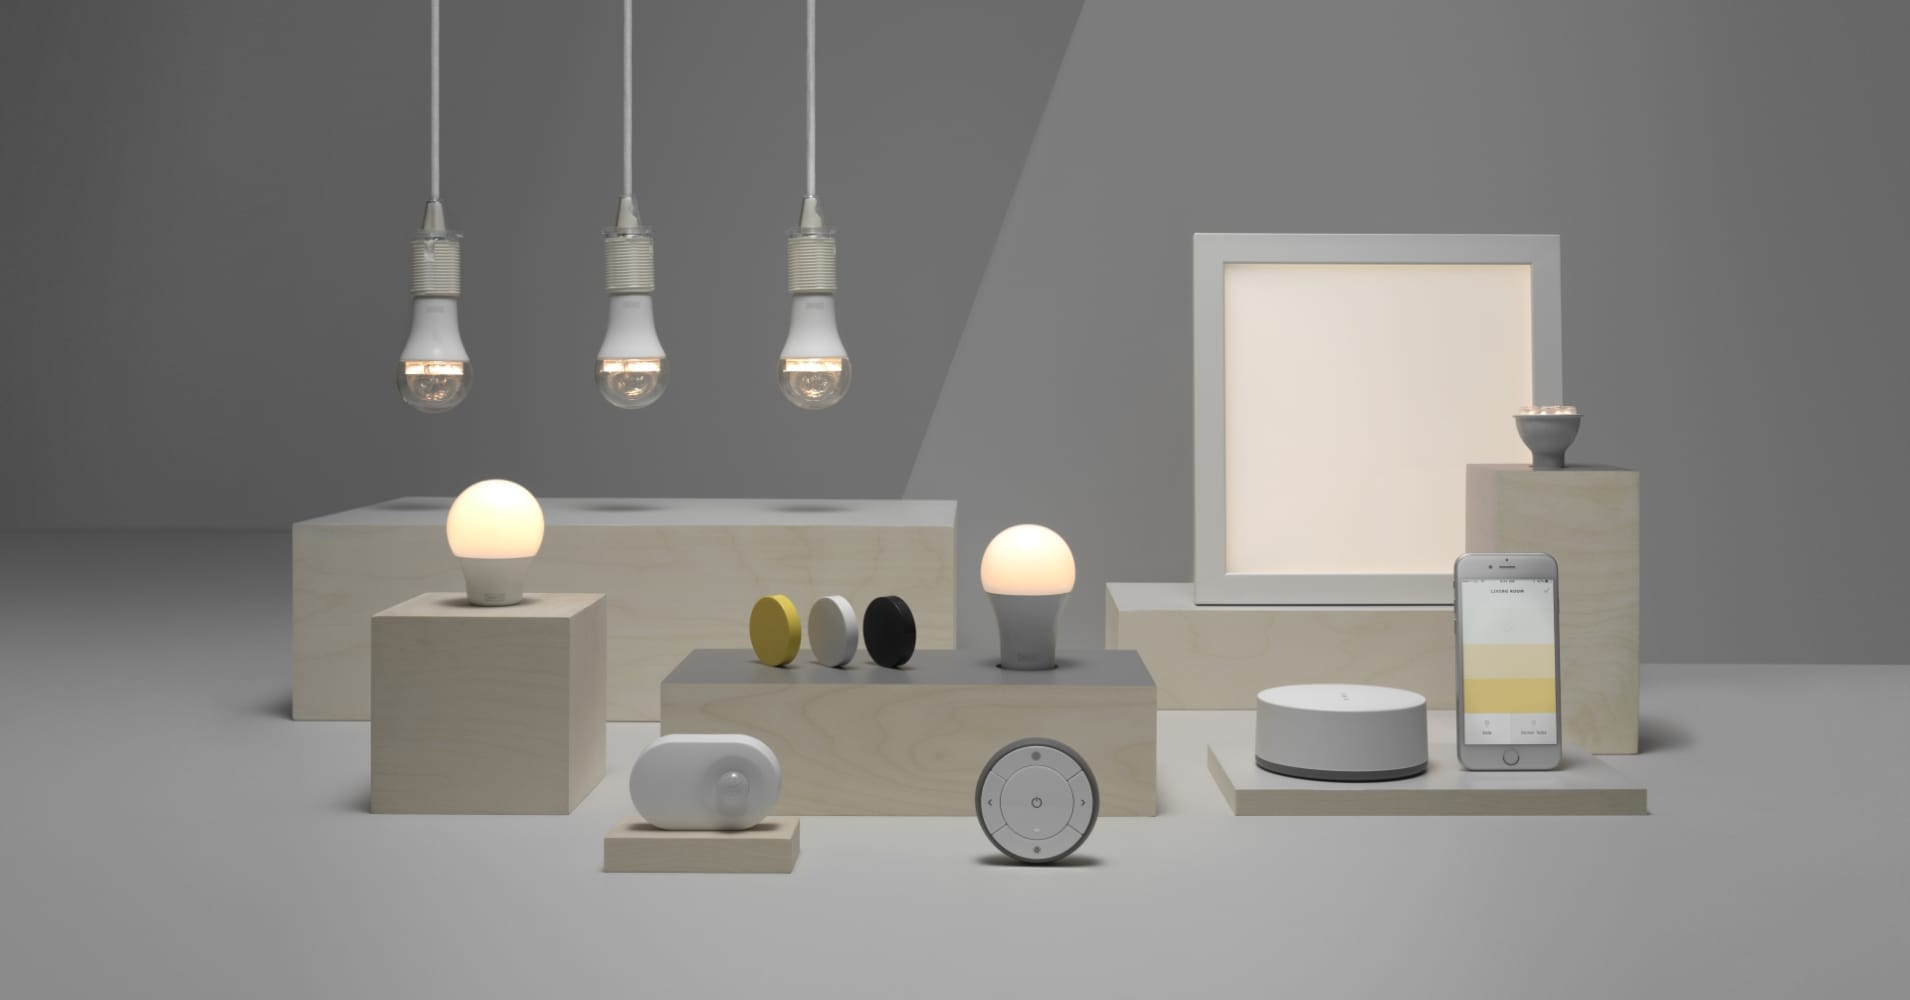 Ikea's cheap smart lighting is getting voice control for owners of Google Home, Amazon Alexa